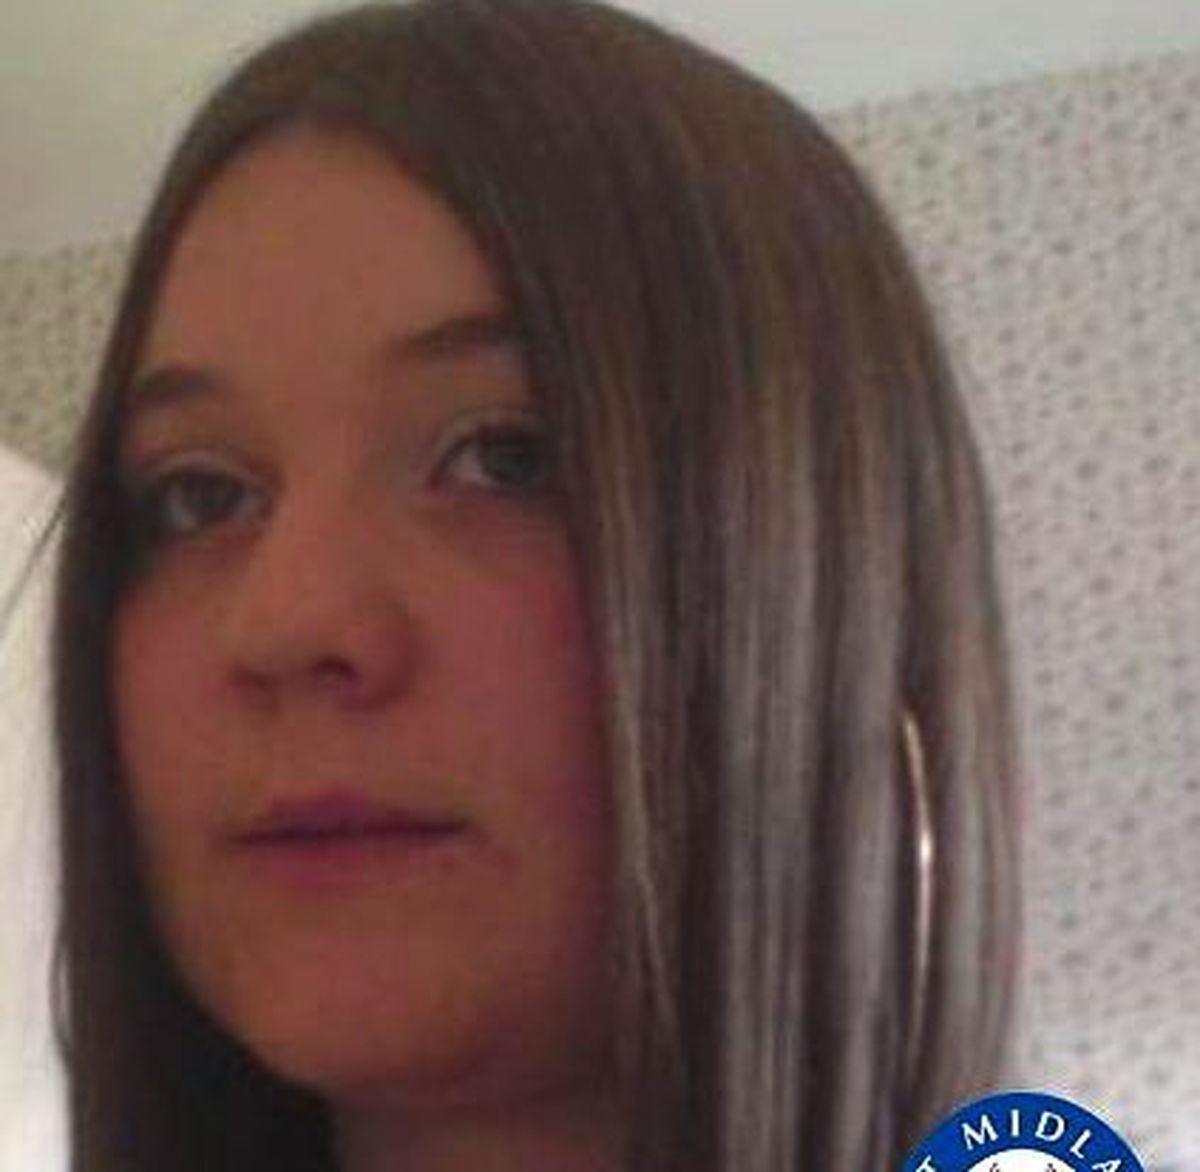 Sarah Handley, from West Bromwich, died in the crash in Crocketts Road